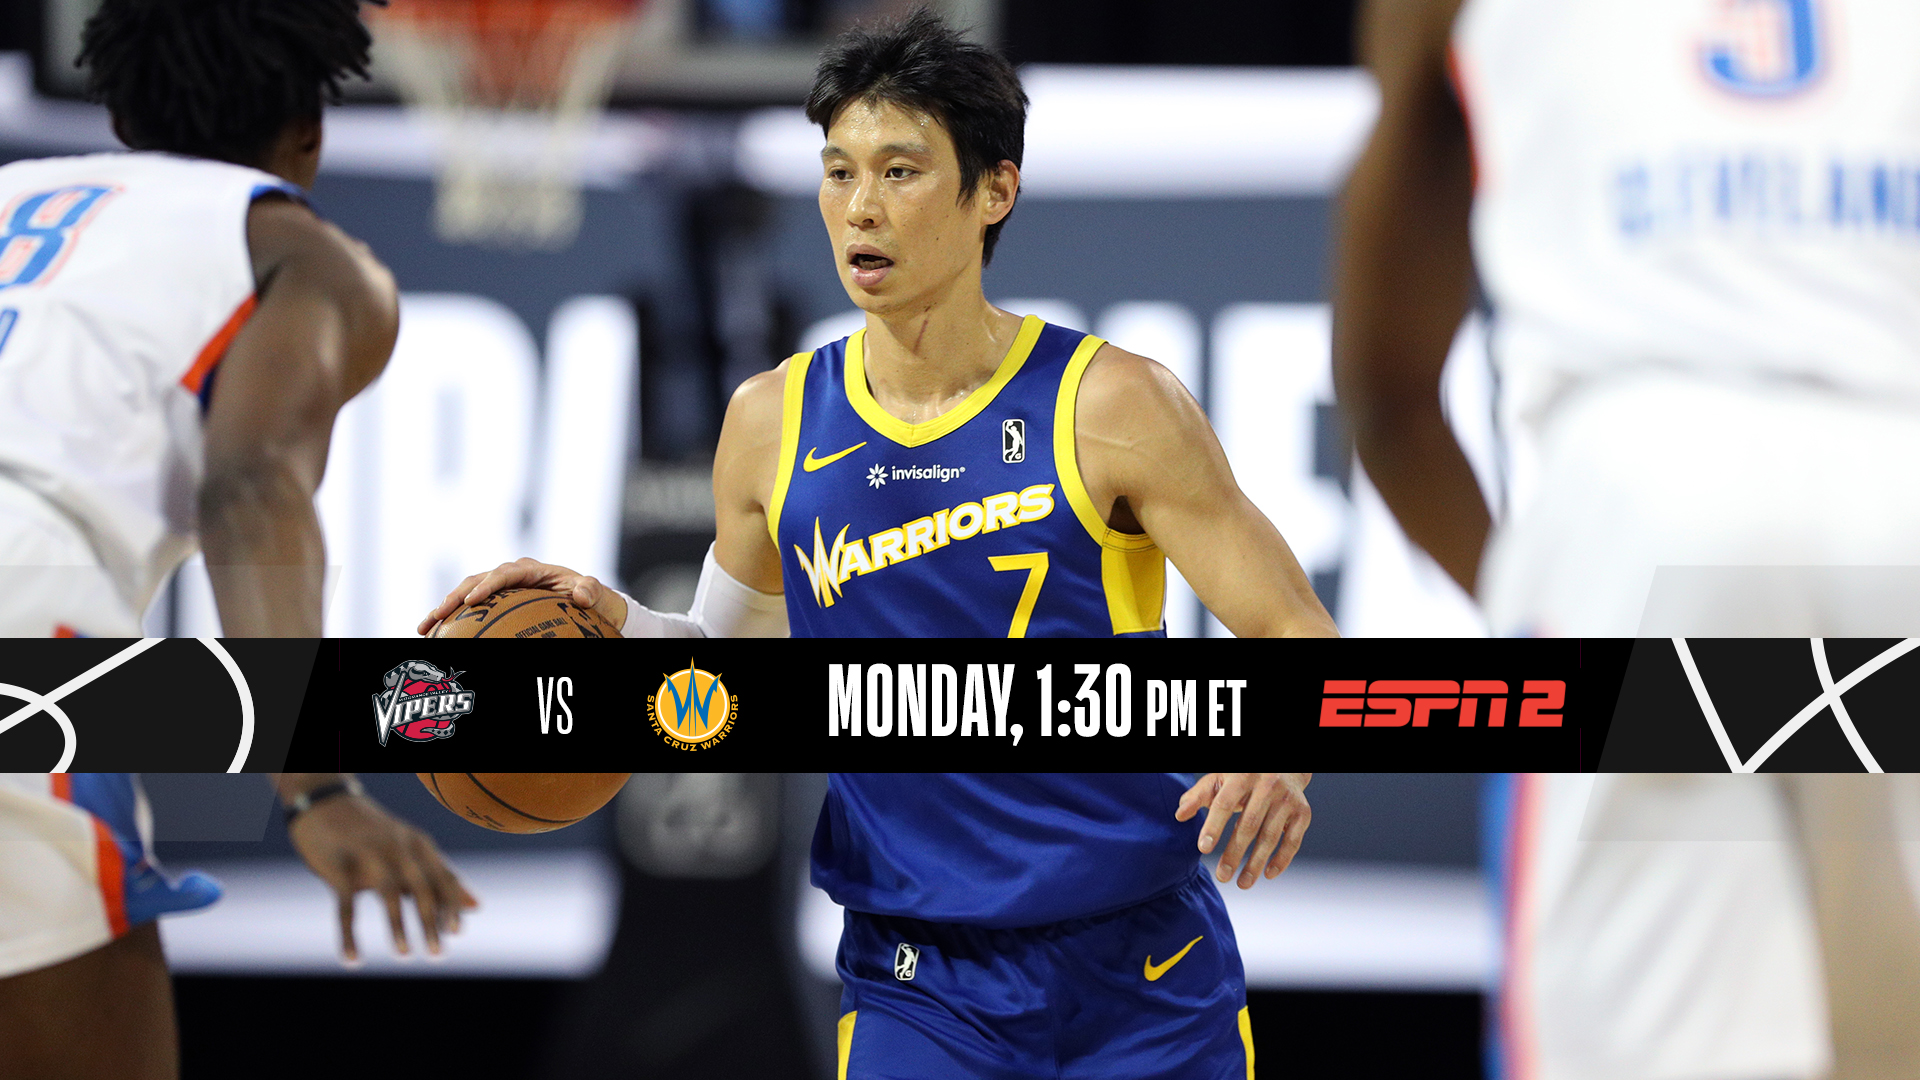 G League single-elimination playoffs begin today